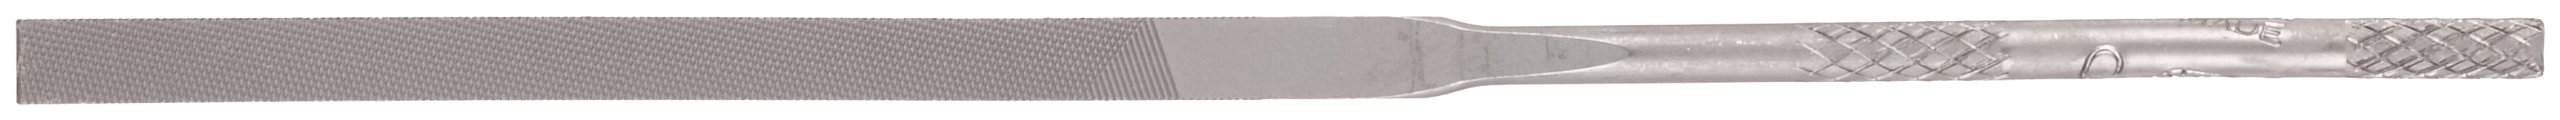 Nicholson Needle File with Handle, Swiss Pattern, Double Cut, Rectangular, #0 Coarseness, 6-1/4'' Length